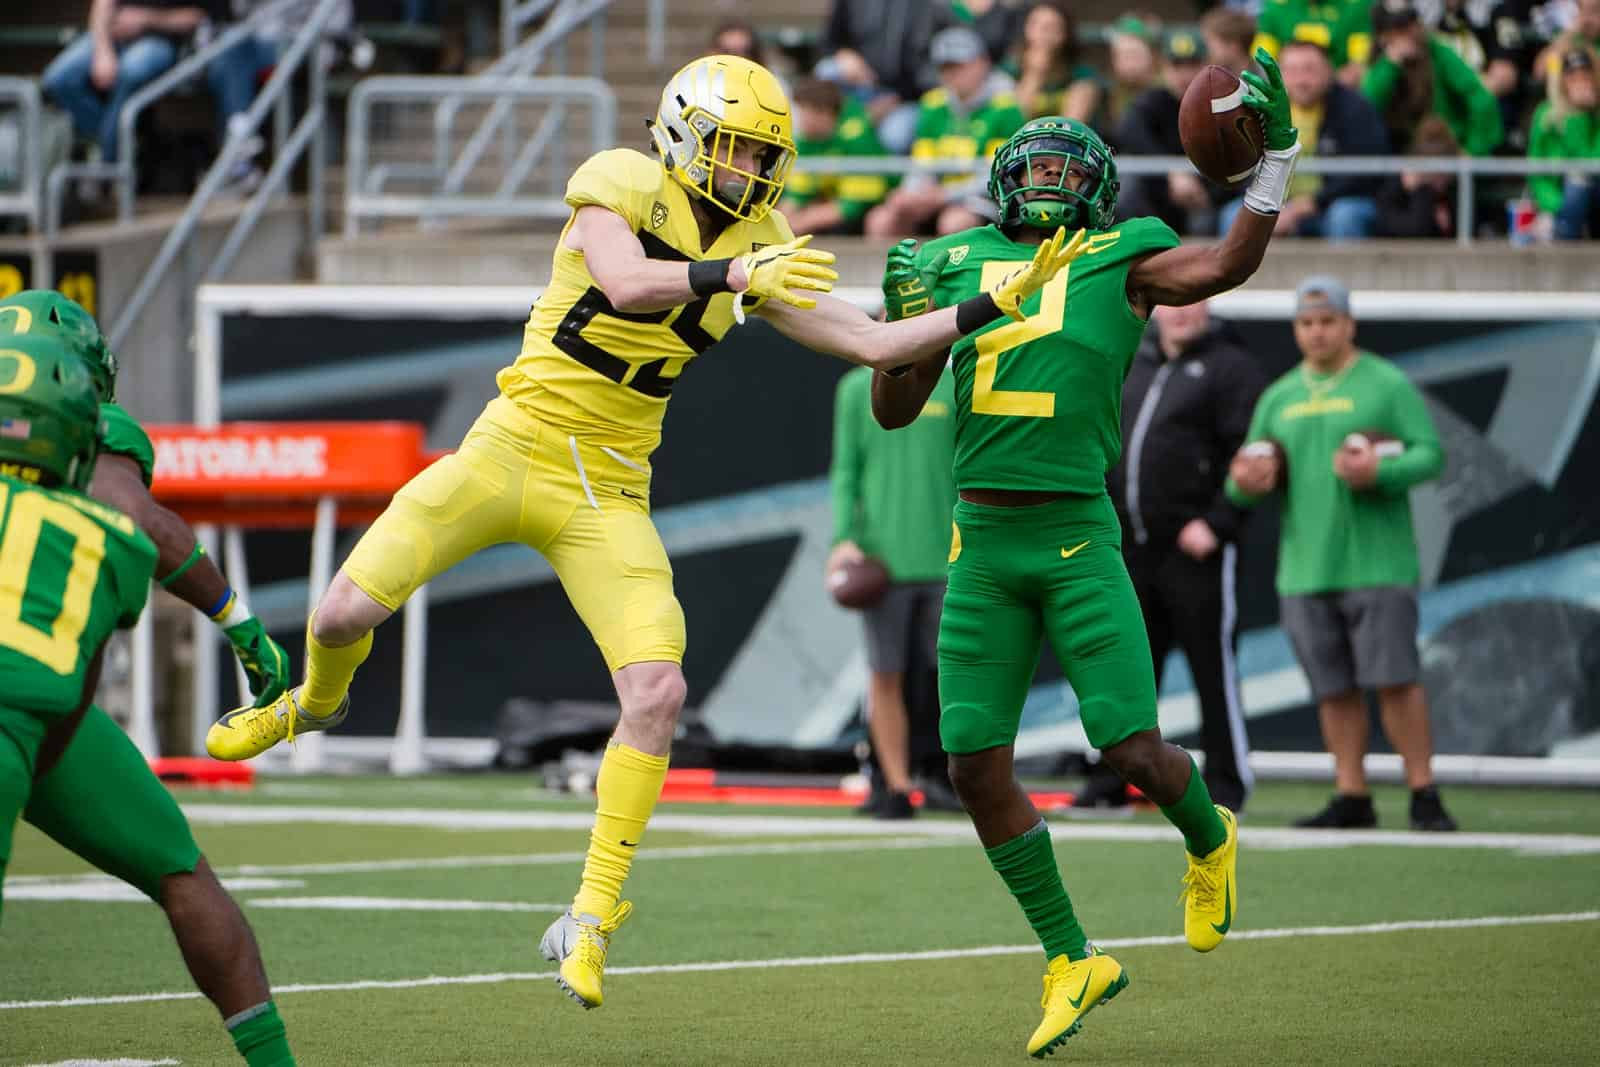 2020 Pac-12 Spring Football Game Schedule